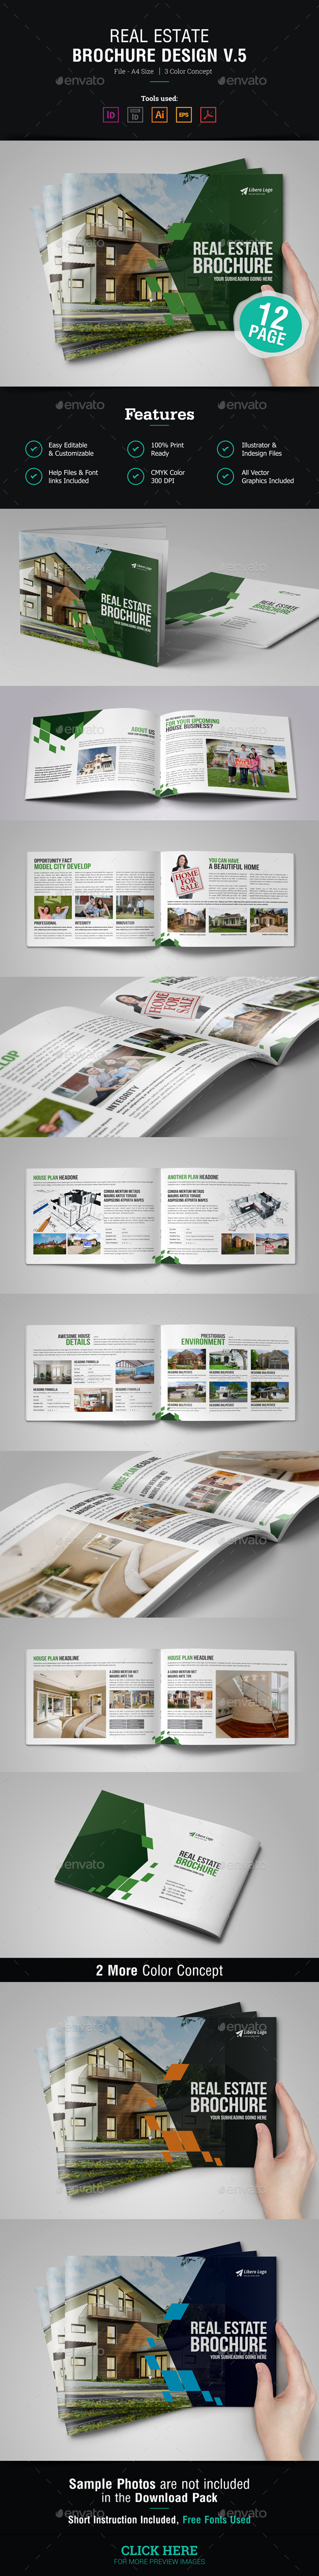 Real Estate Brochure Design v5 - Corporate Brochures